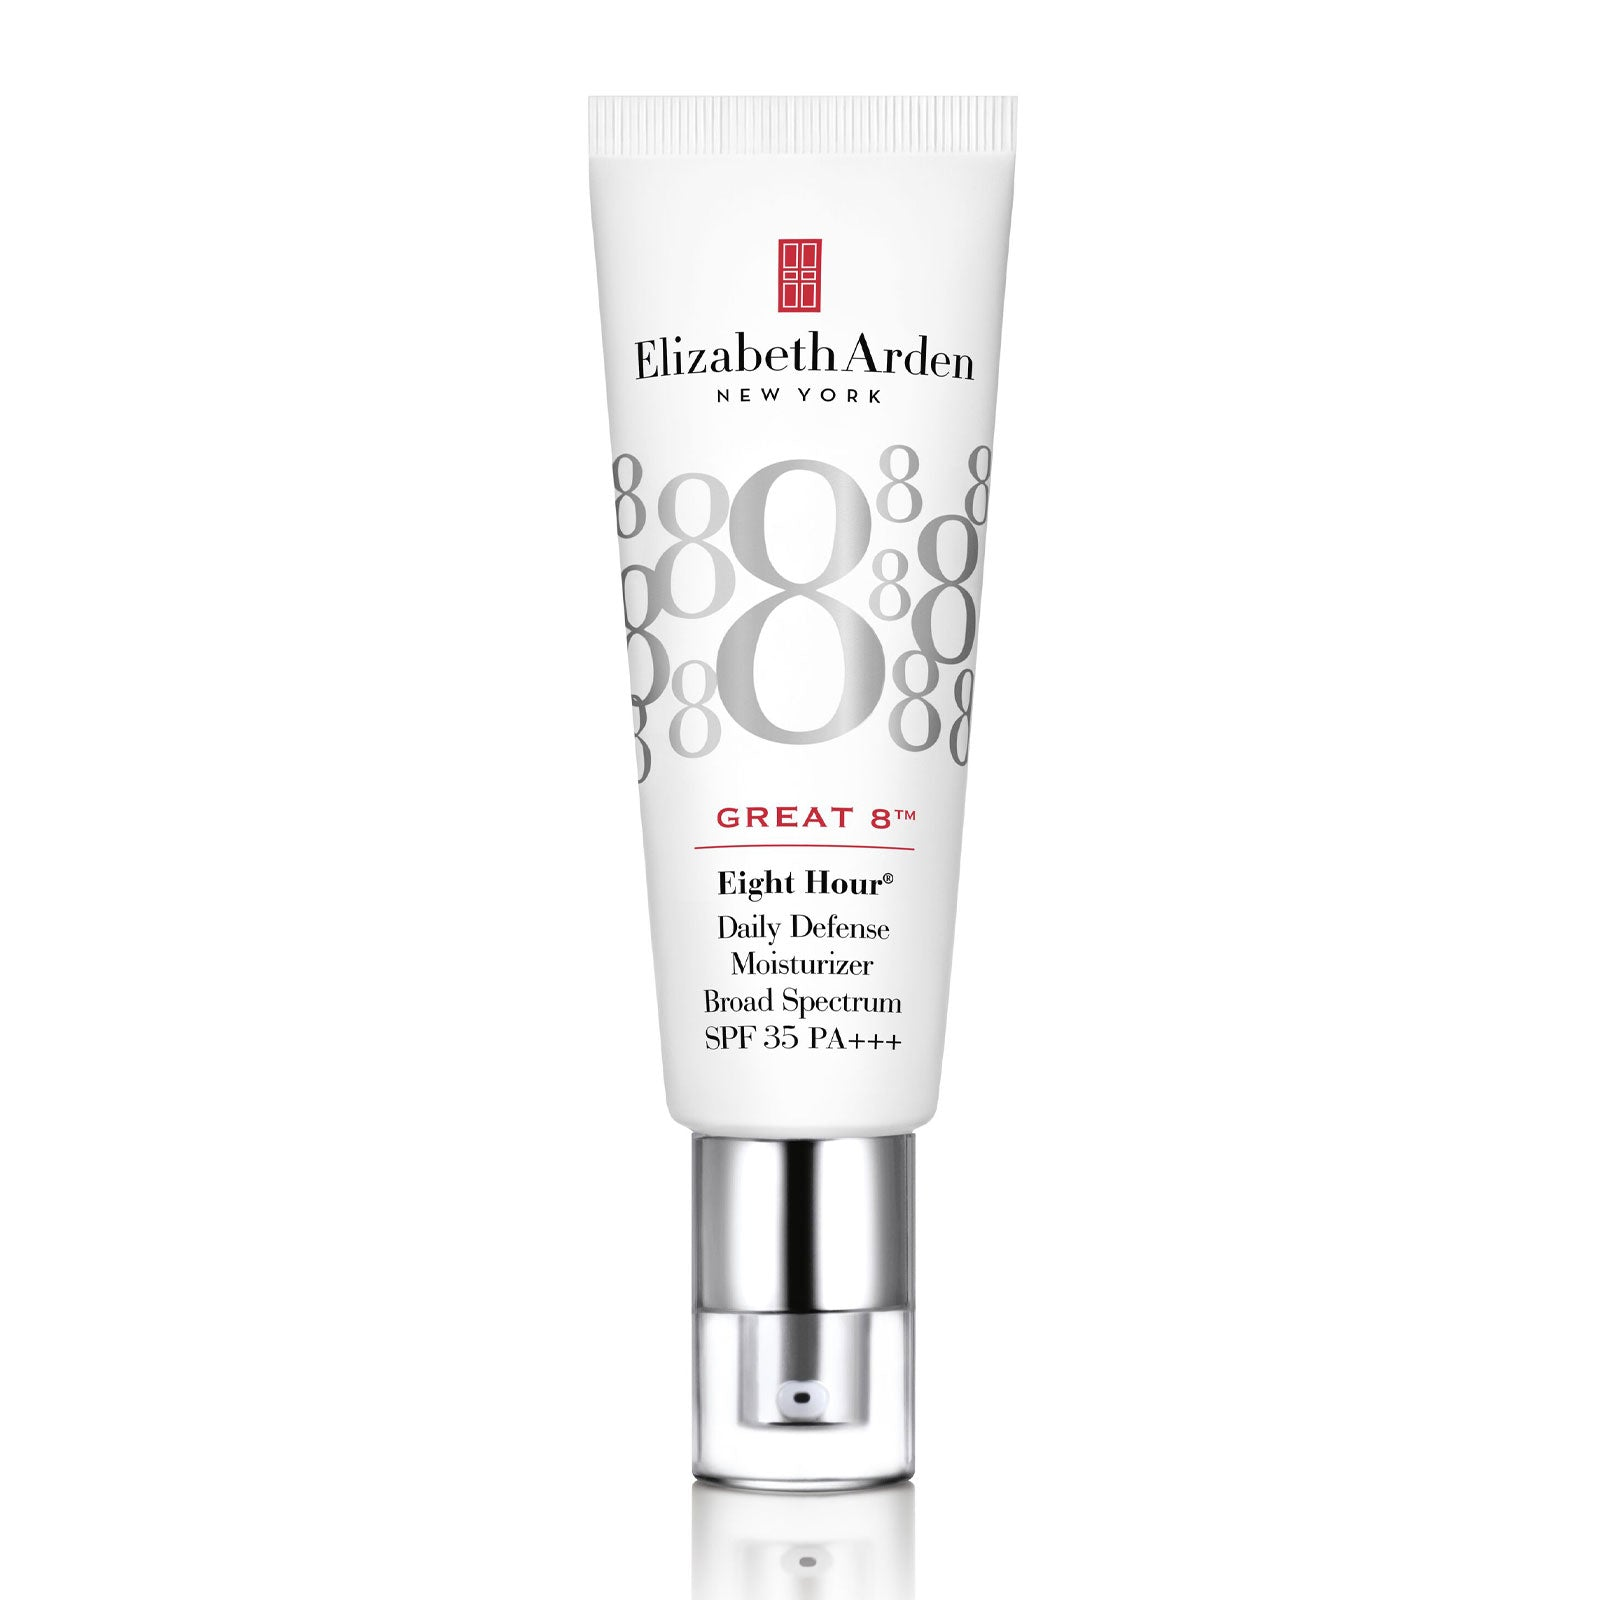 Elizabeth Arden Great 8™ Eight Hour® Daily Defense Moisturizer SPF35 45ml